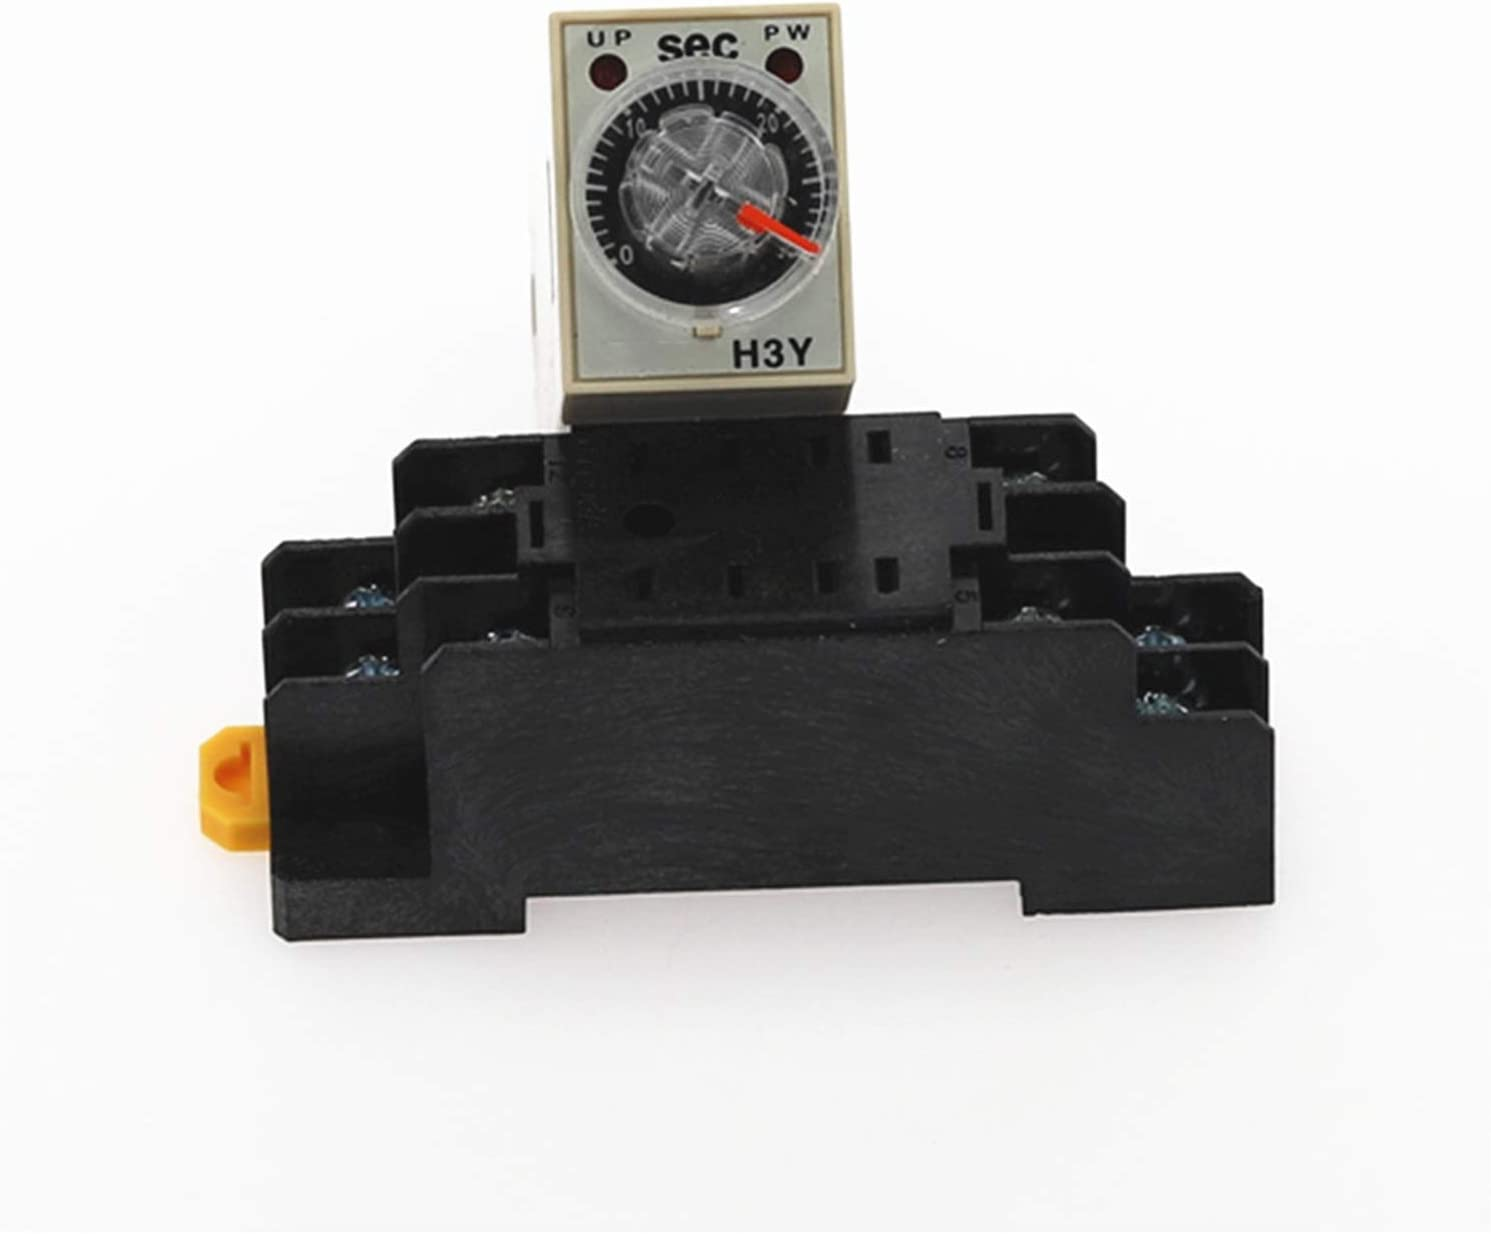 YSJJLRV Relay Rotary Knob DPDT 1S 5S 10S 10M 30S 30M 60S Recommended 5M 3M T Washington Mall